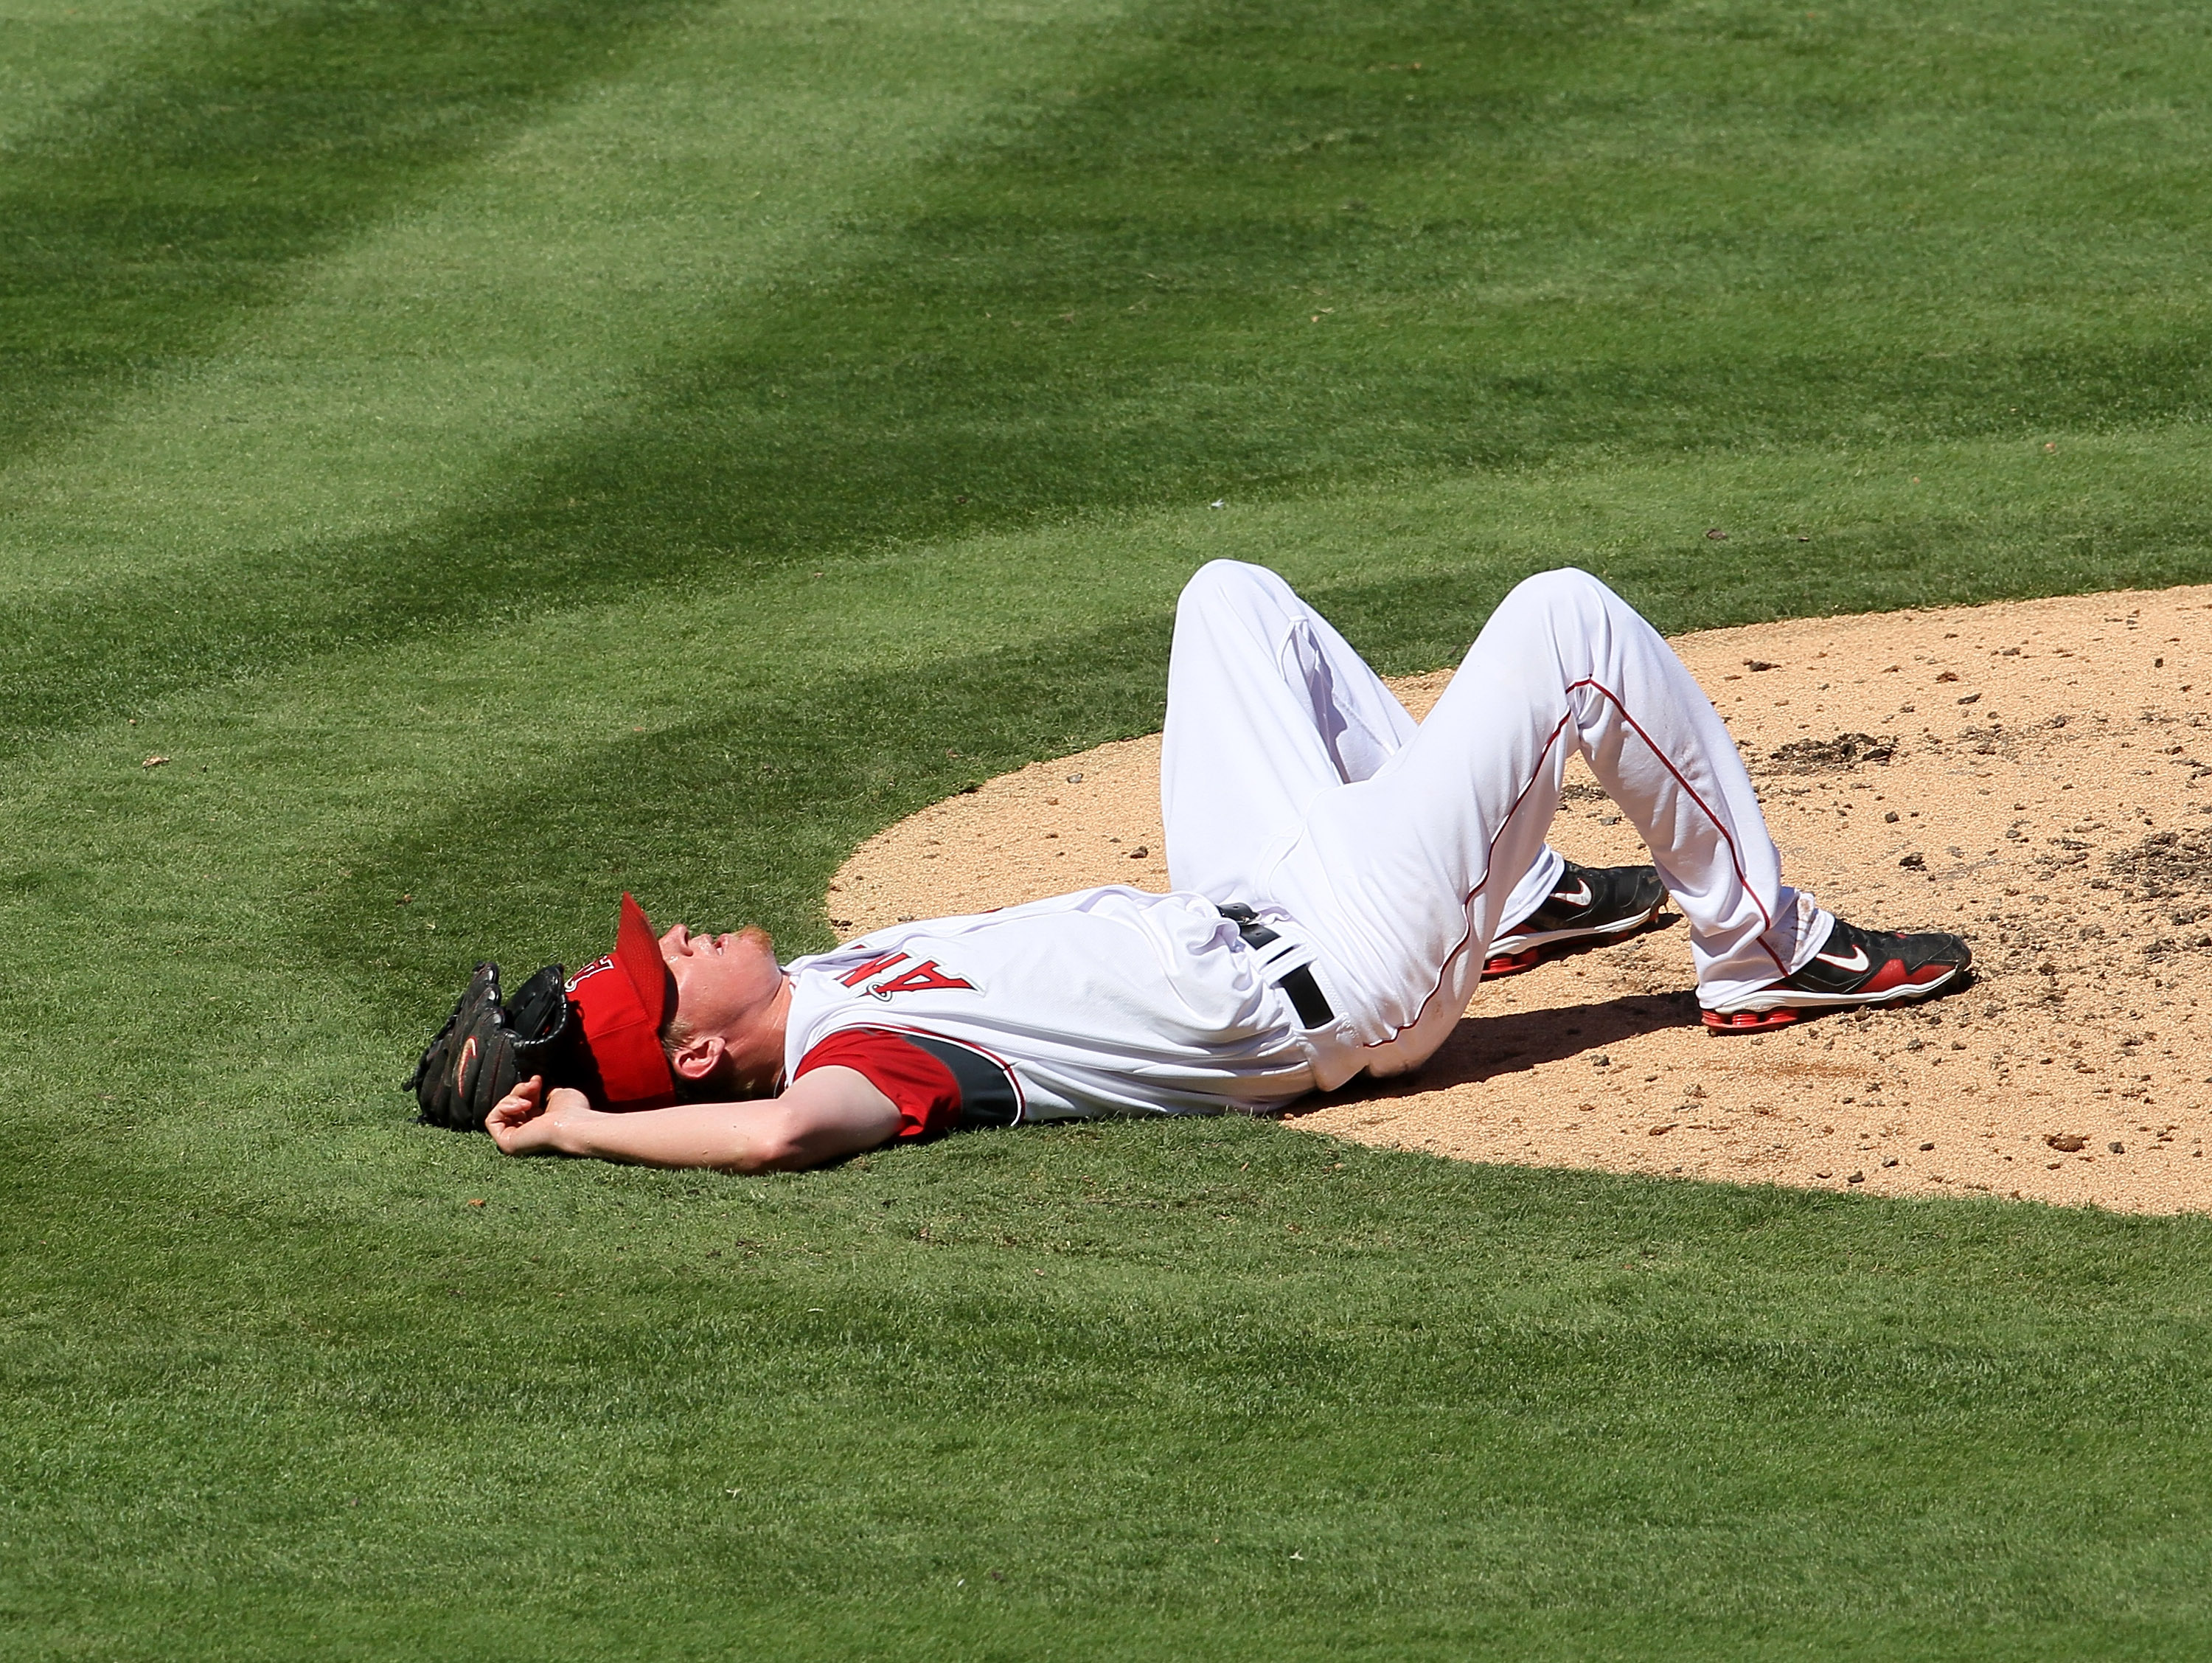 ANAHEIM, CA - SEPTEMBER 26:  Pitcher Jered Weaver #36 of the Los Angeles Angels of Anaheim lies on the ground after grabbing a line drive that would have hit him in the head off the bat of Juan Pierre of the Chicago White Sox in the third inning on Septem